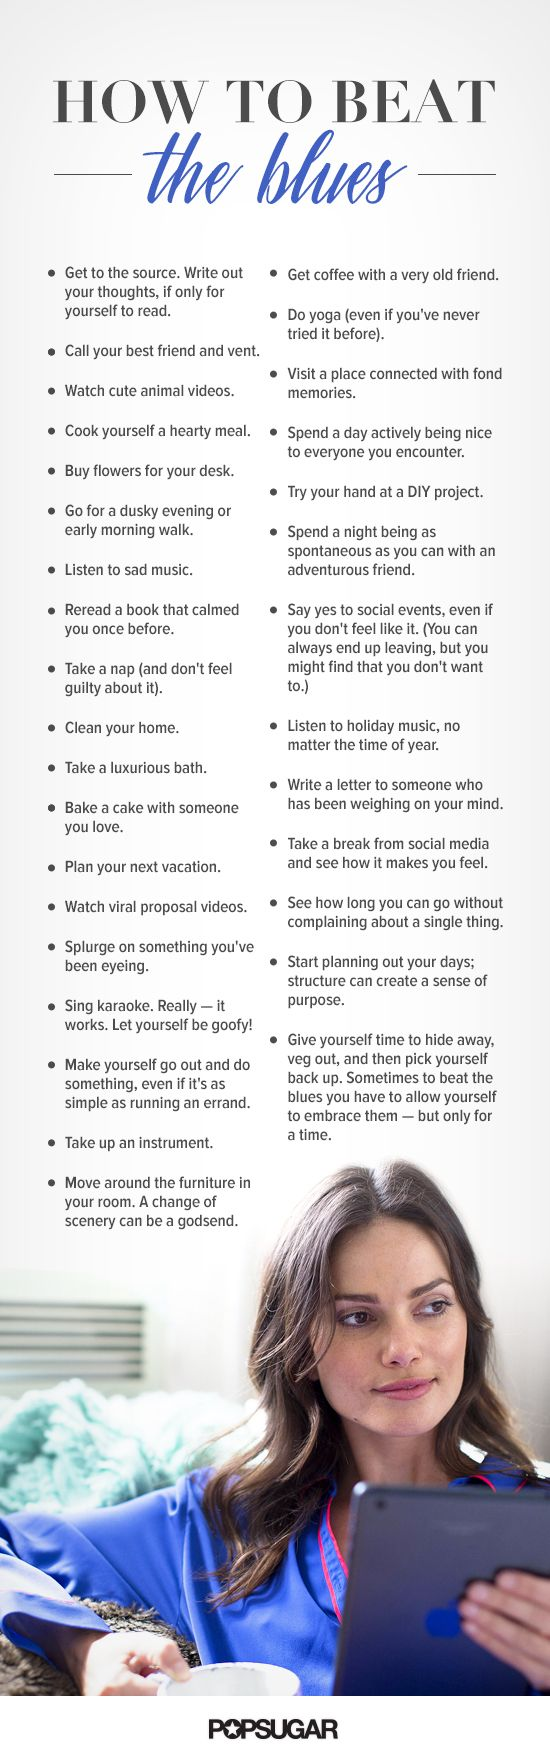 Though they're little, these tips can help you to grow out of your blues, remedy your gloom, and get you back on track toward a happy life.